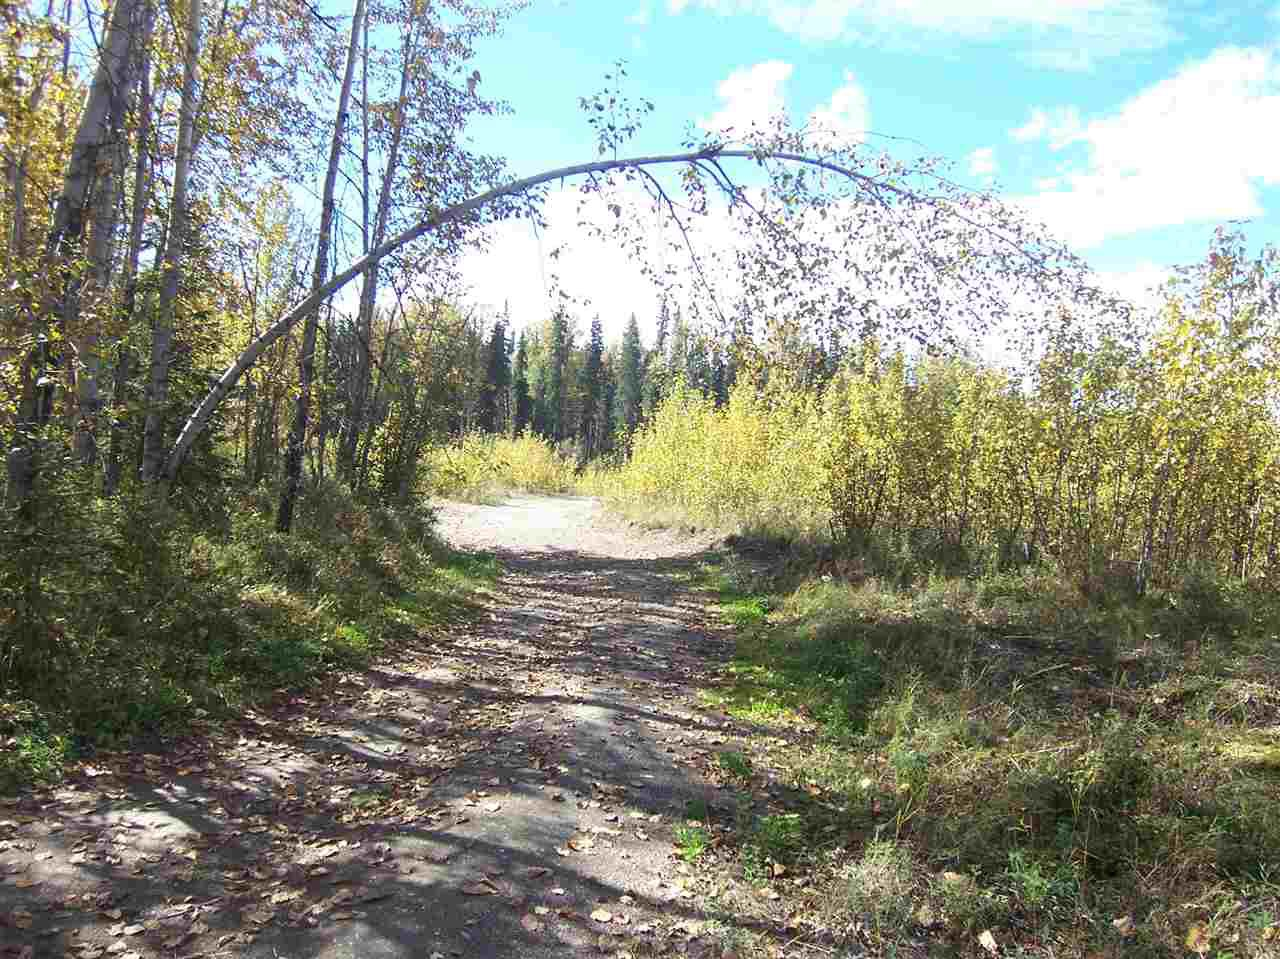 Photo 9: Photos: 4682 BARKERVILLE Highway in Quesnel: Quesnel - Rural North Land for sale (Quesnel (Zone 28))  : MLS®# R2105293